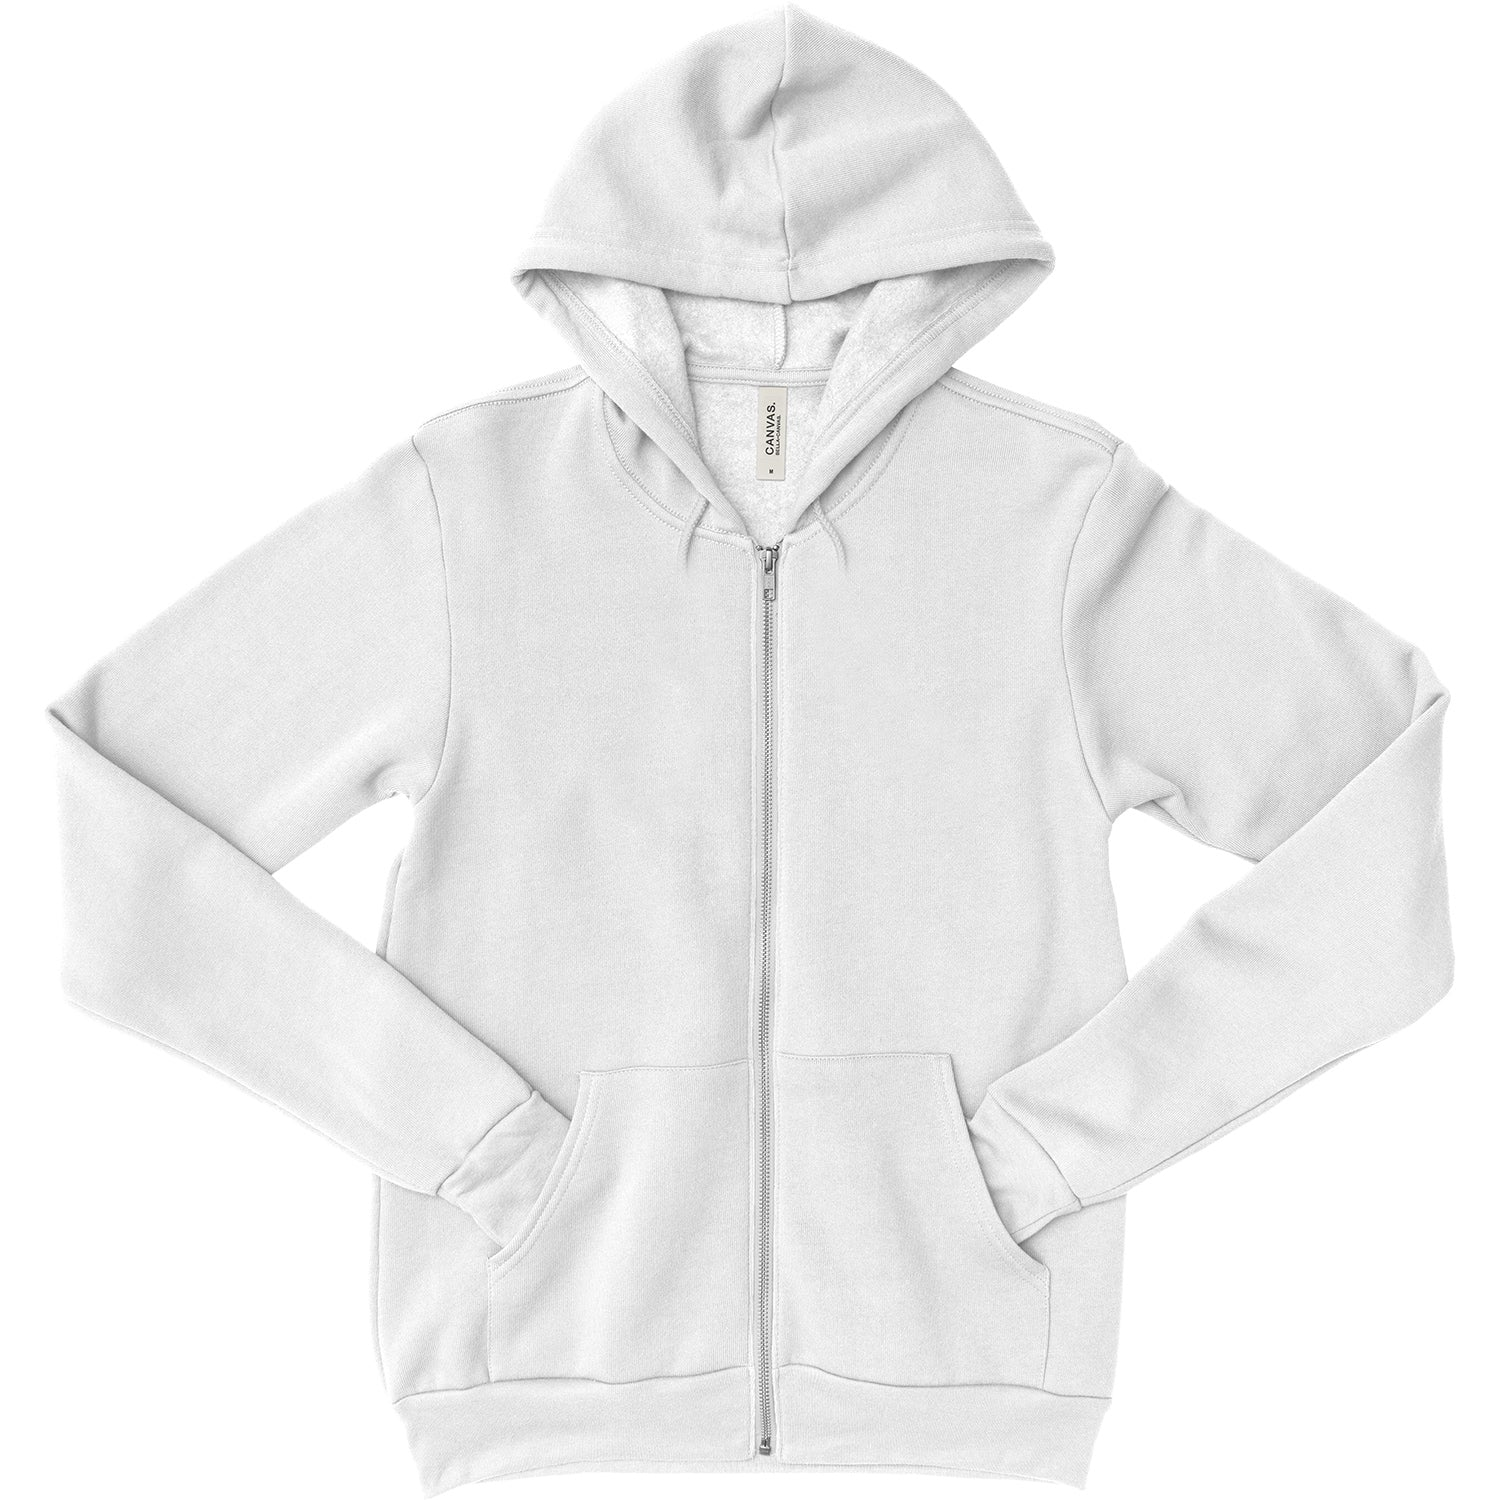 Unisex Zipper Dual Blend Fleece Hoodie - White